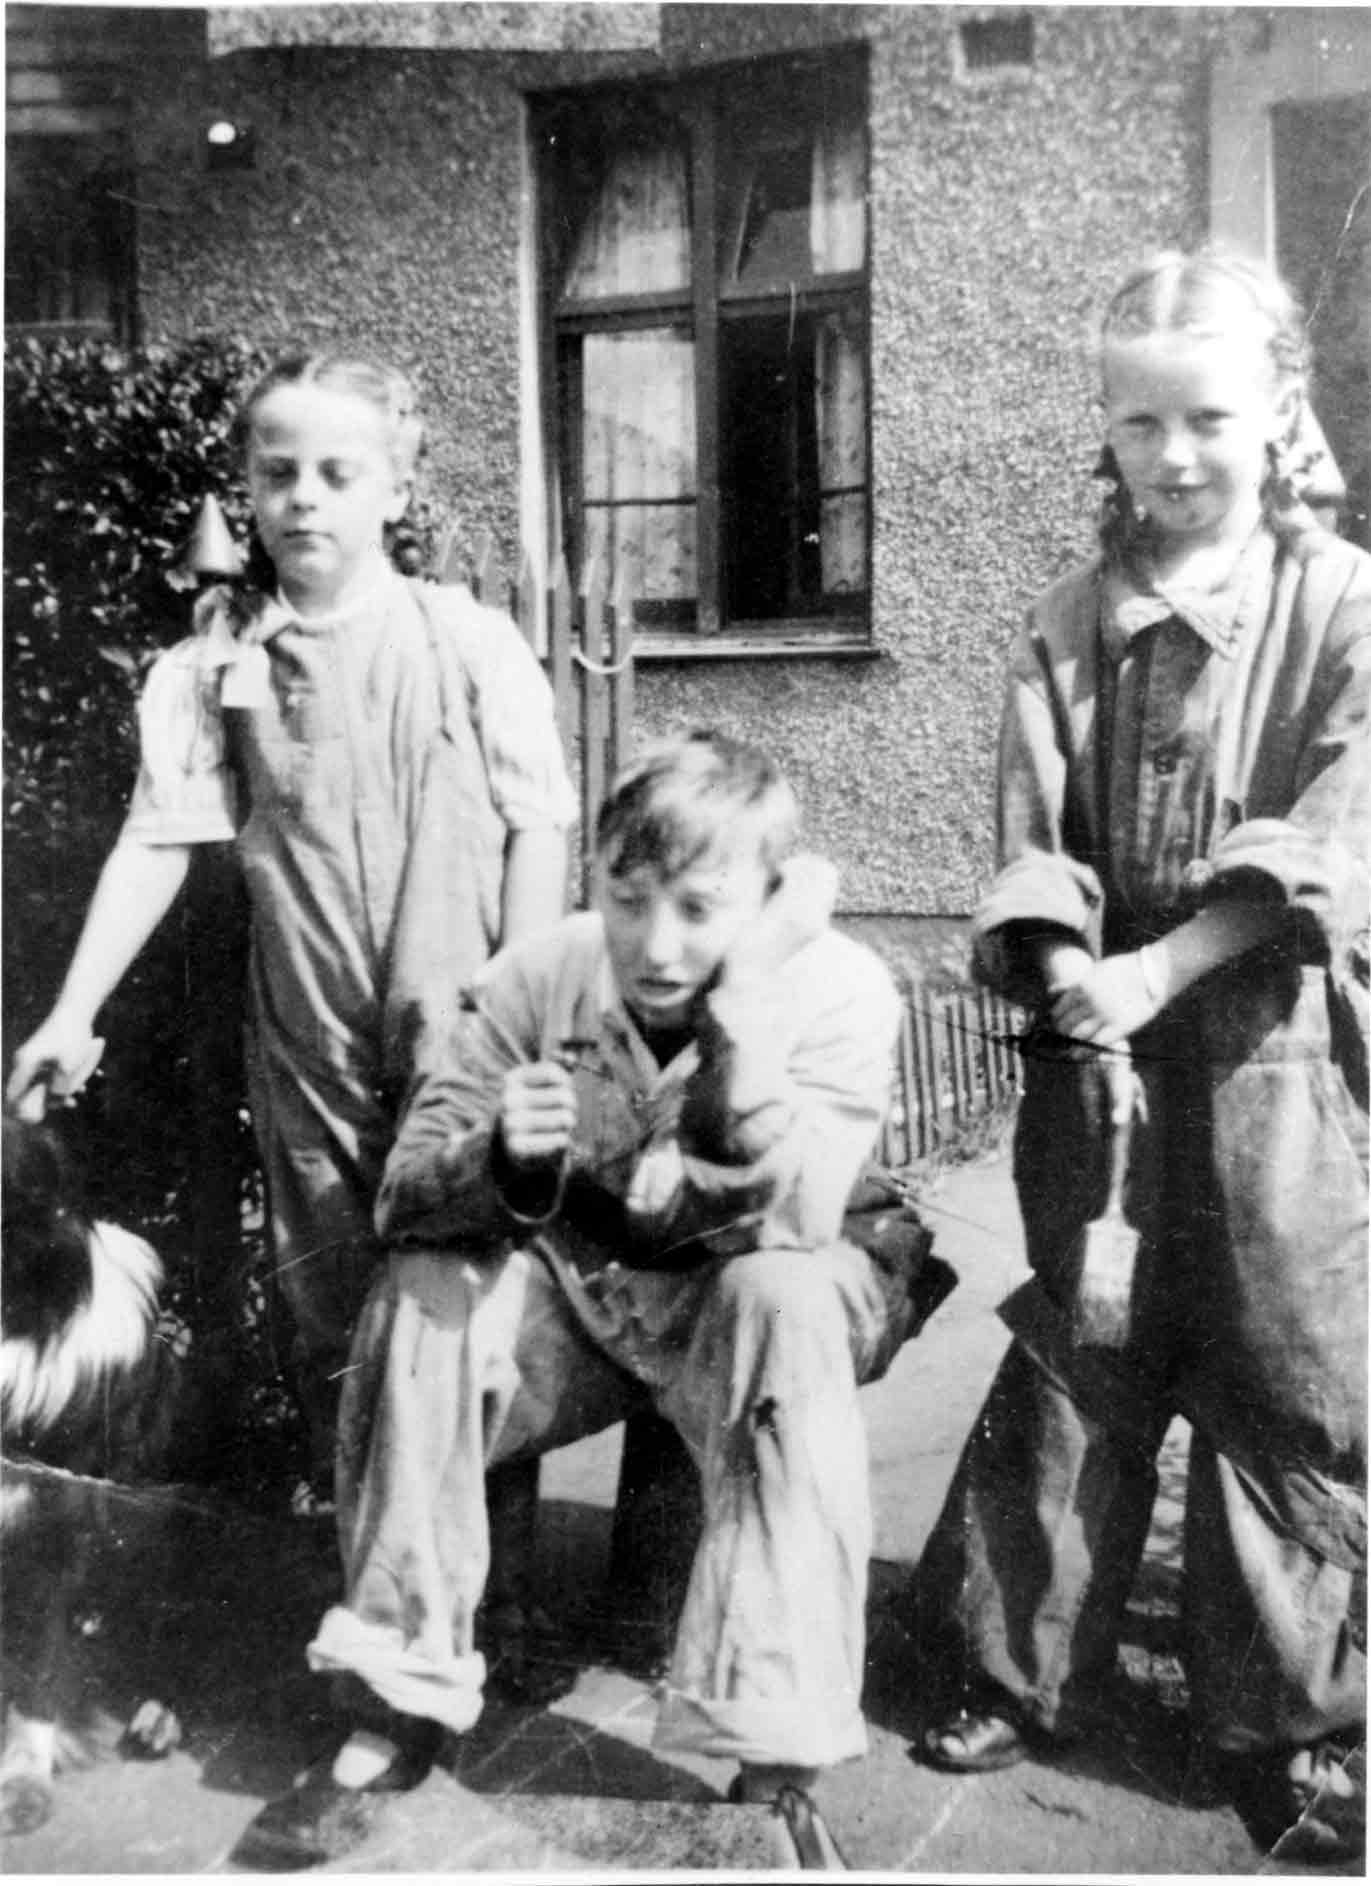 Children In Overalls Ready To Paint Fence c.1946